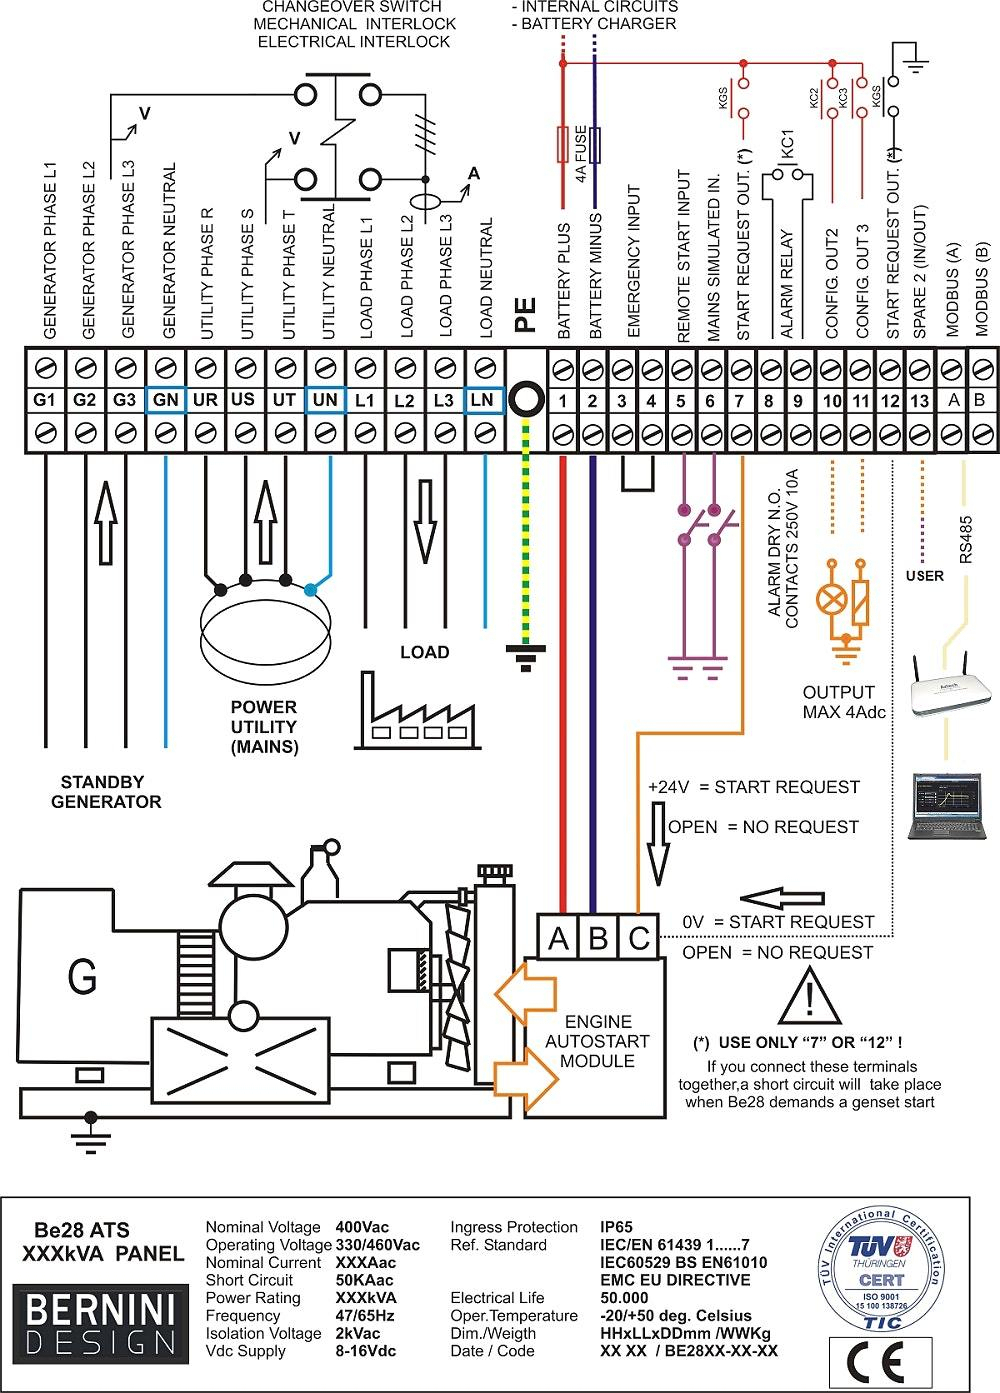 Battery Charger For Generac Generator Wiring Diagram | Manual E-Books - Generac Battery Charger Wiring Diagram